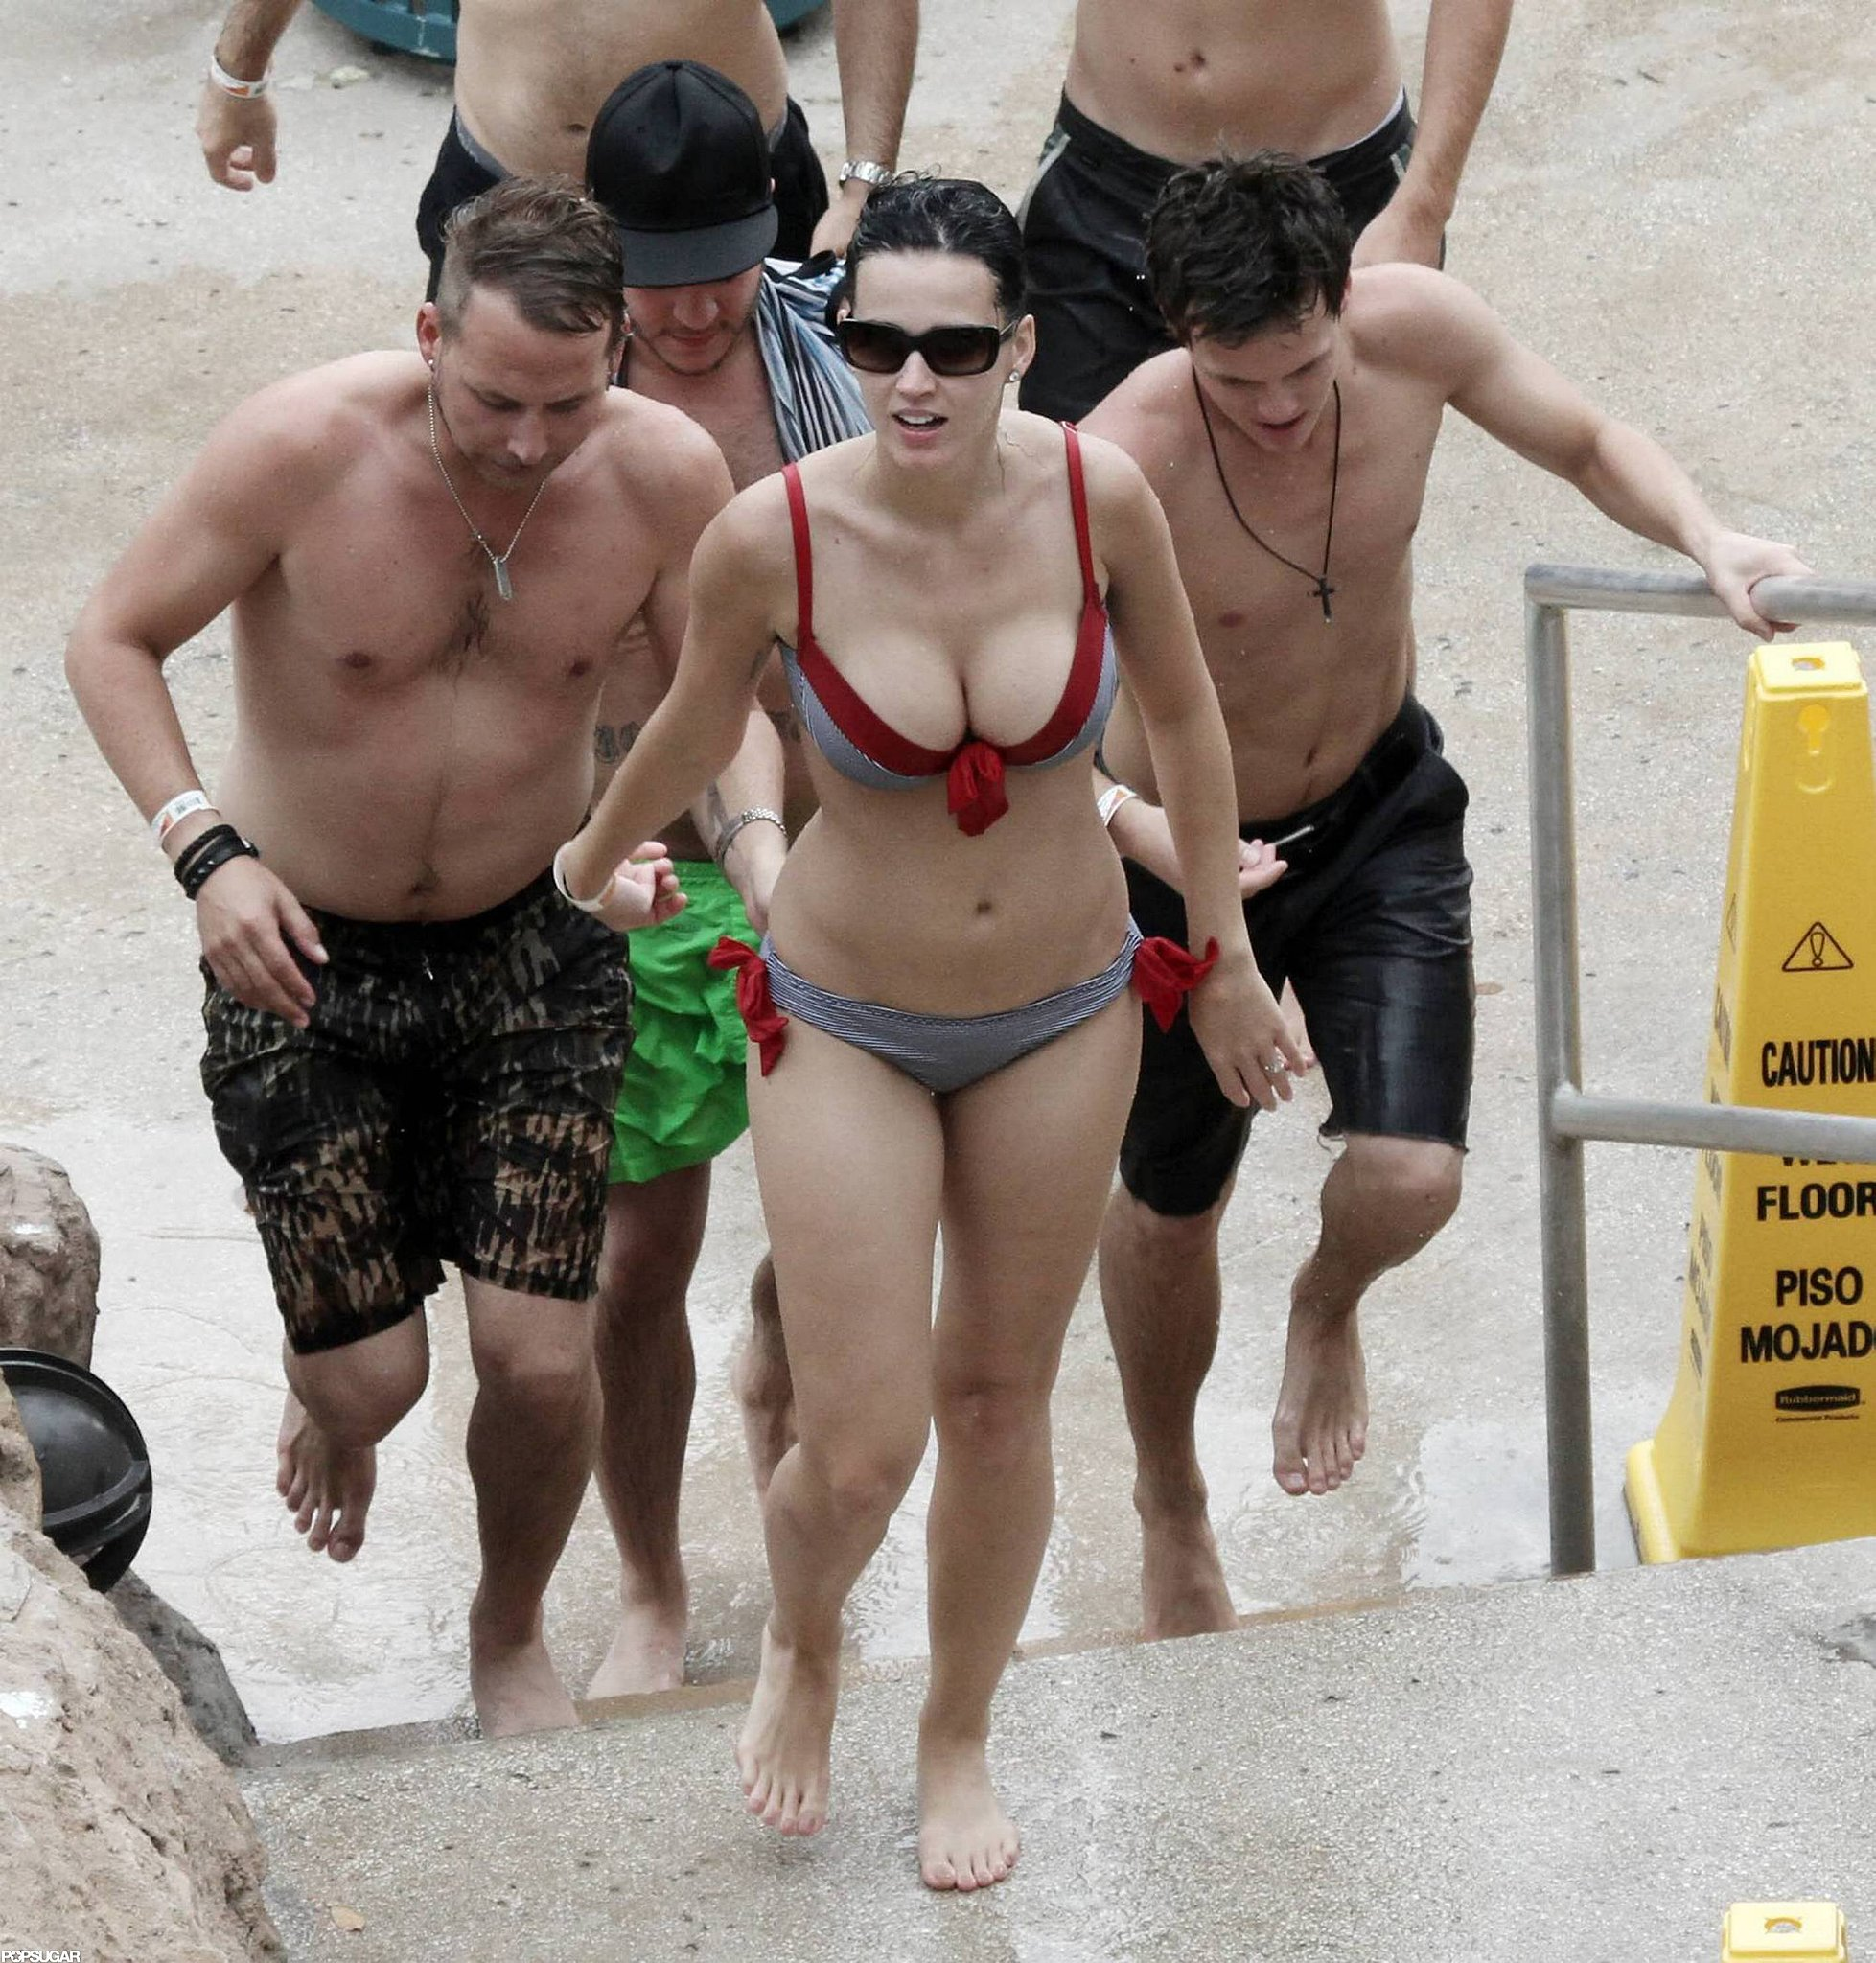 Katy Perry hit the beach in the Bahamas in July 2010 wearing a bikini with red ties.